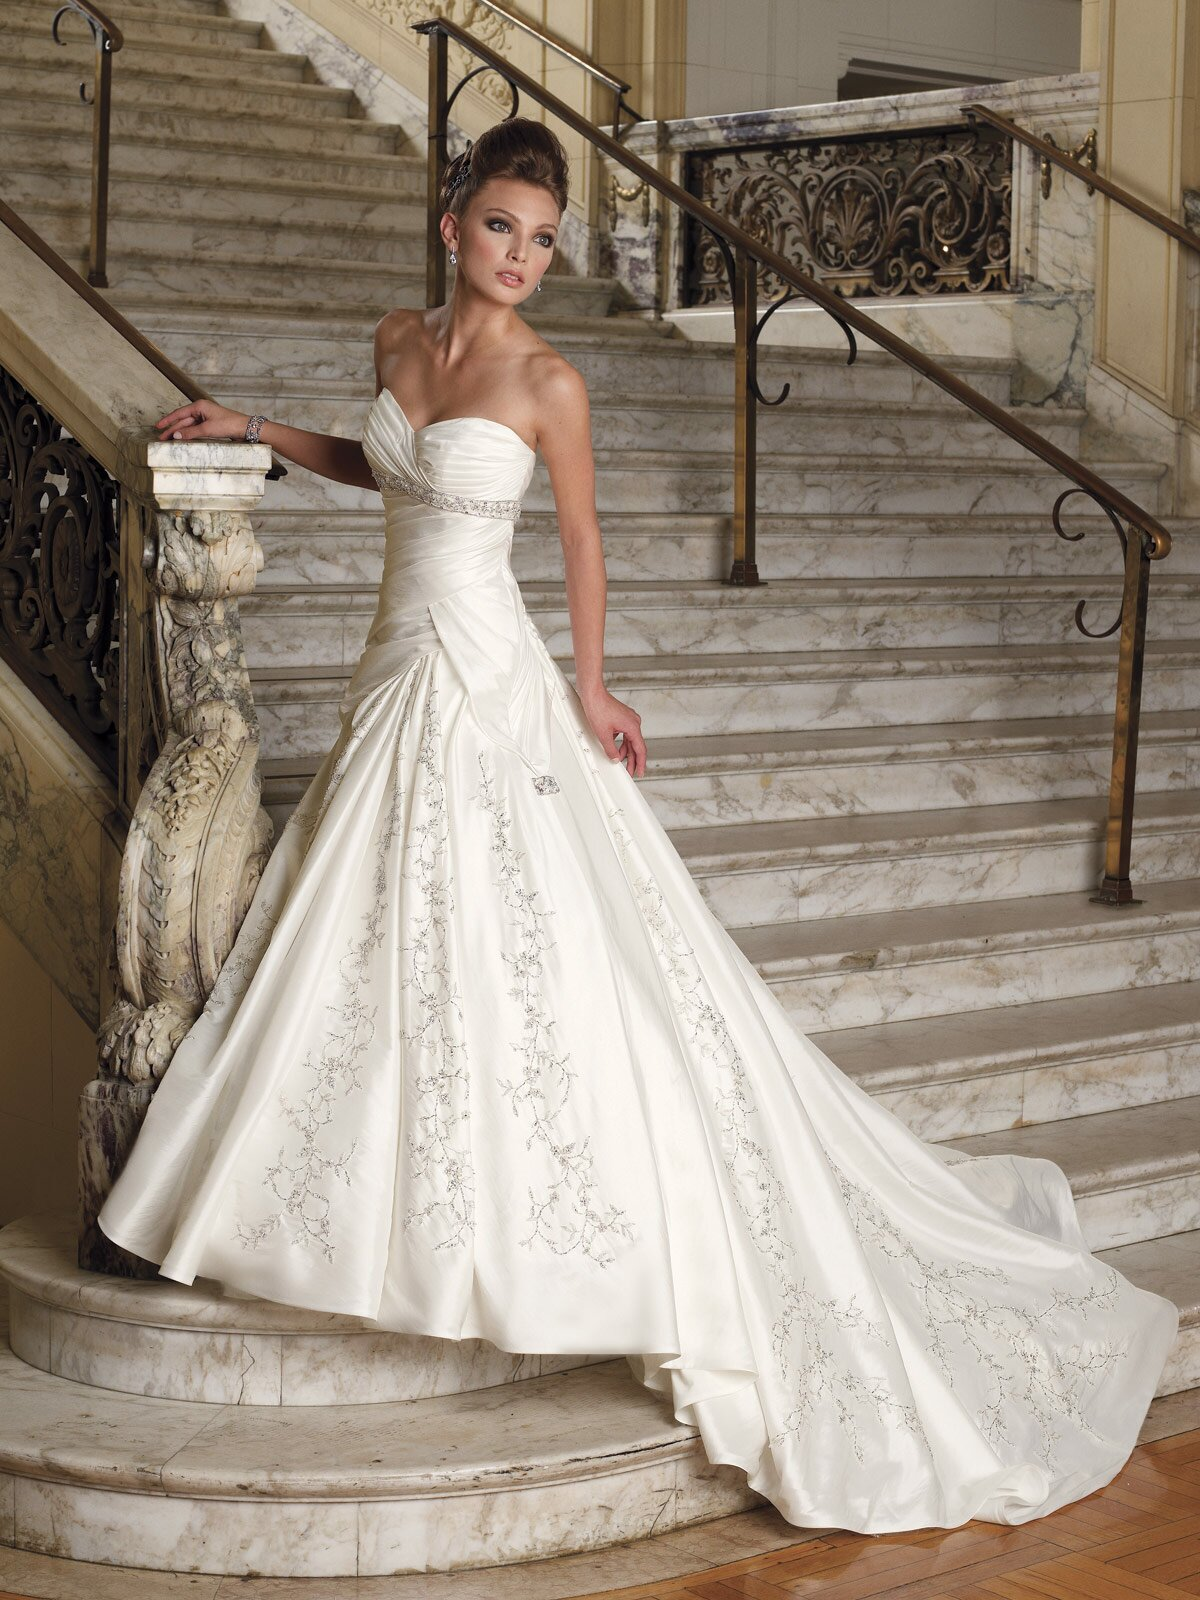 Most Popular Wedding Dresses Pictures Ideas Guide To Buying